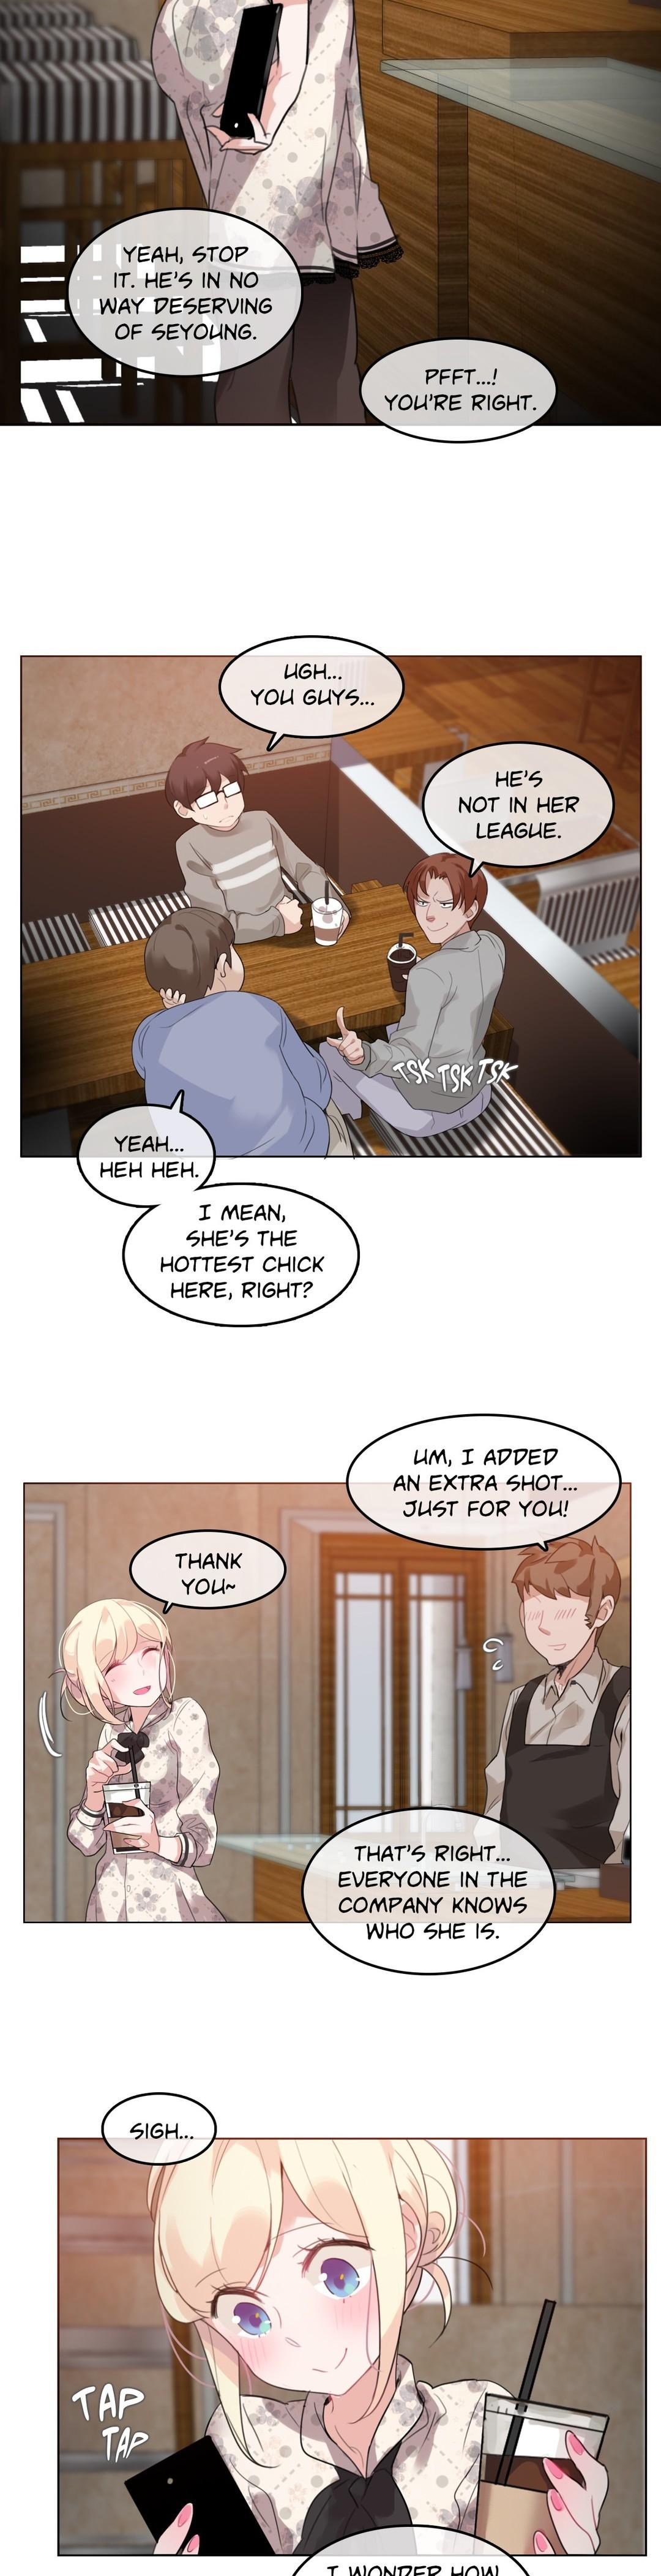 A Pervert's Daily Life Ch. 1-34 611